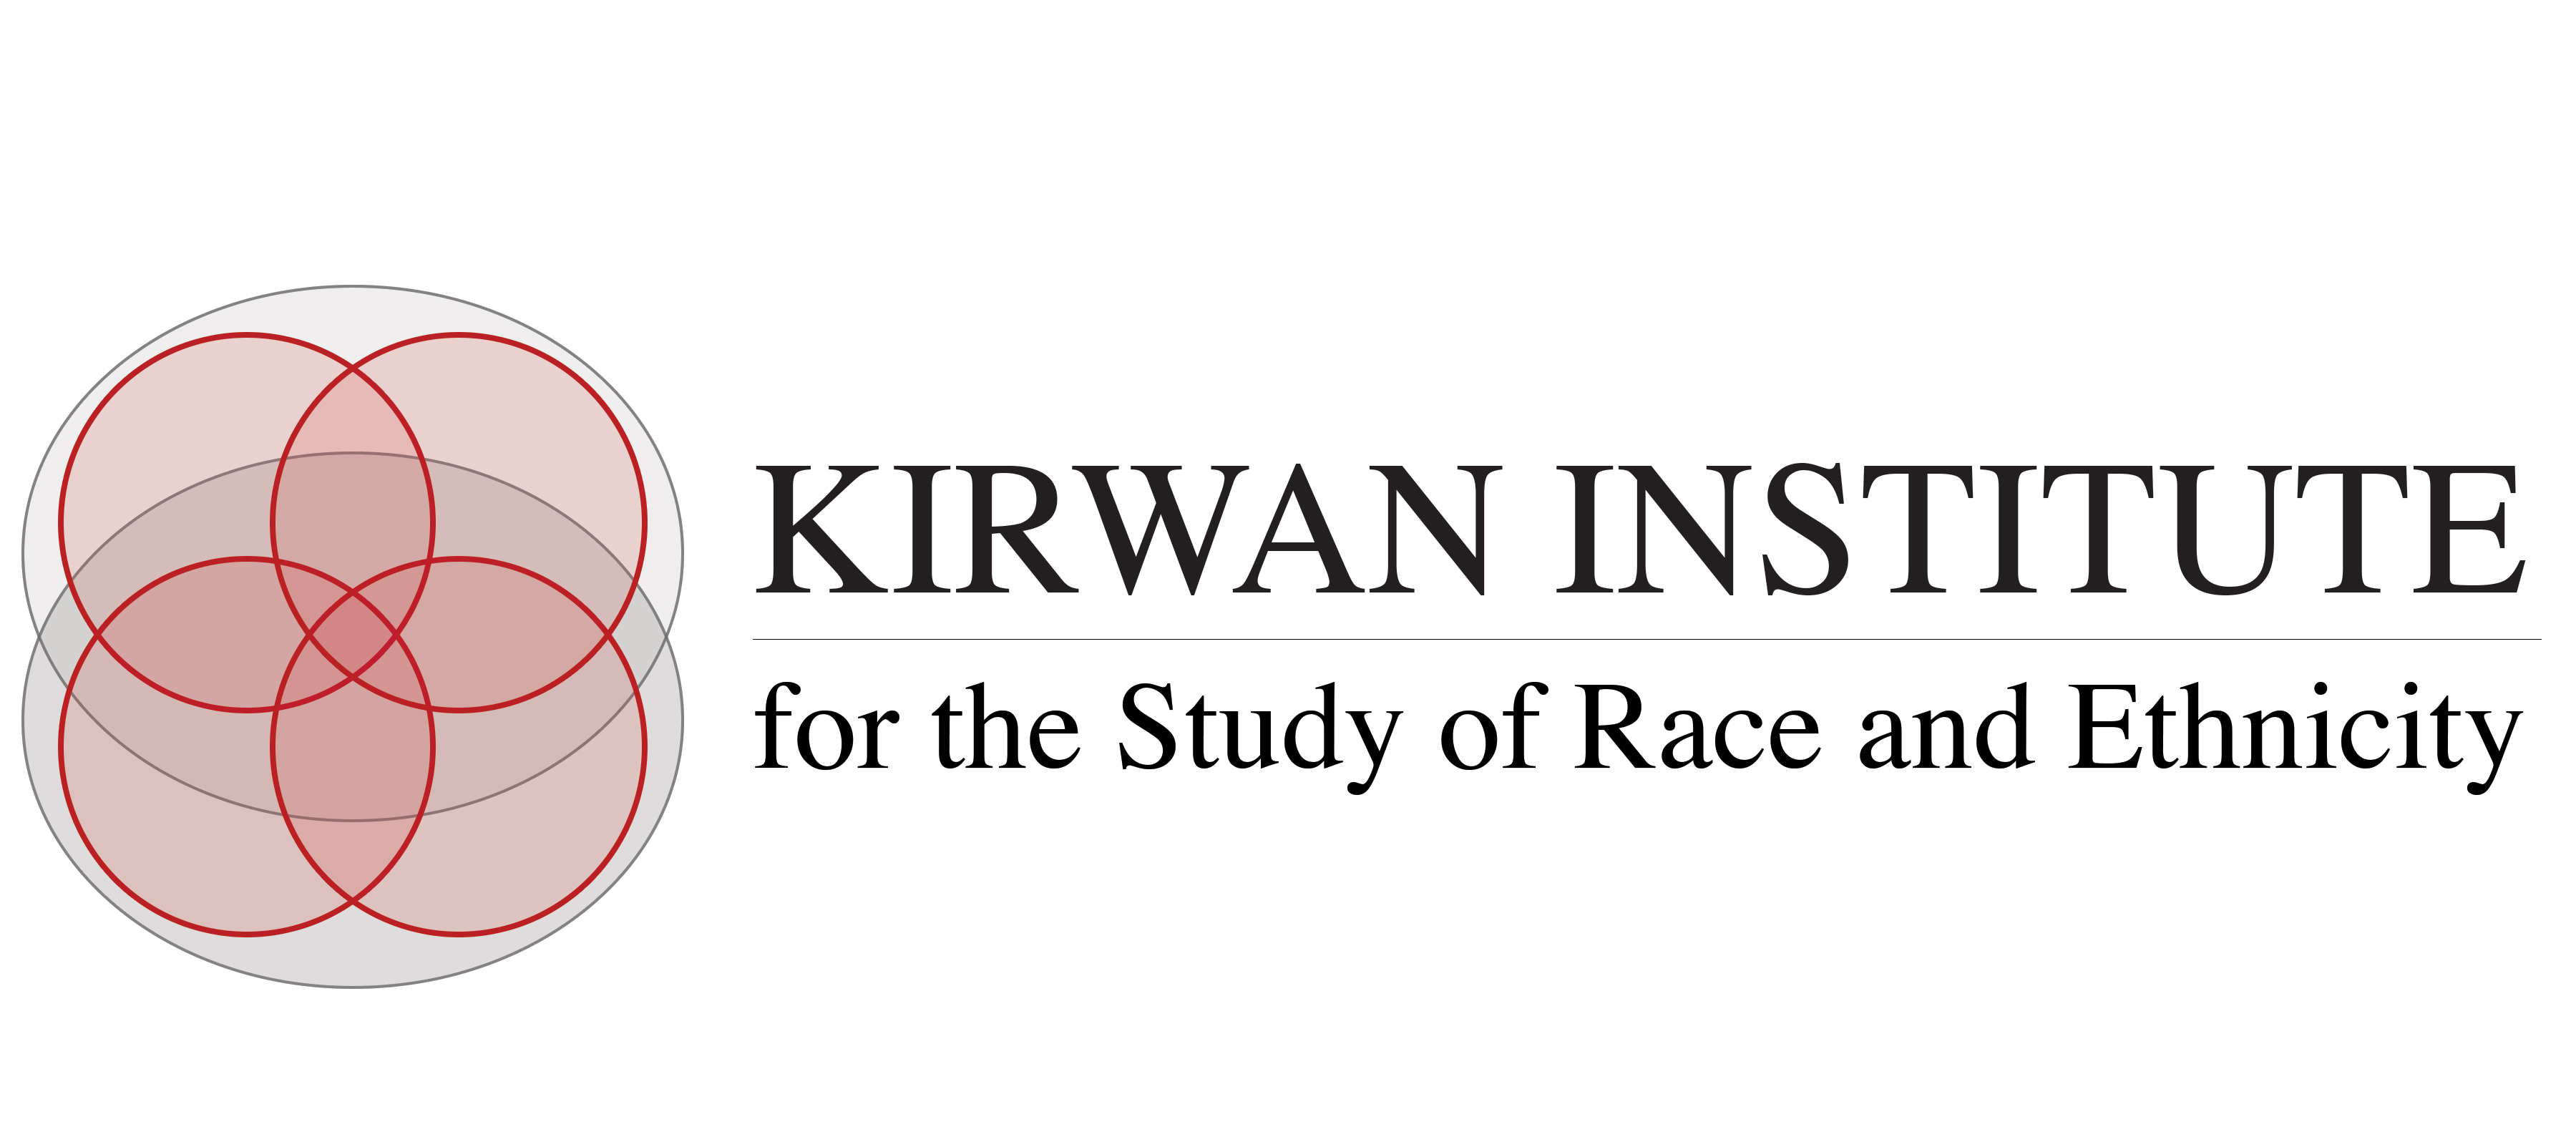 Kirwan_Institute_logo.jpg